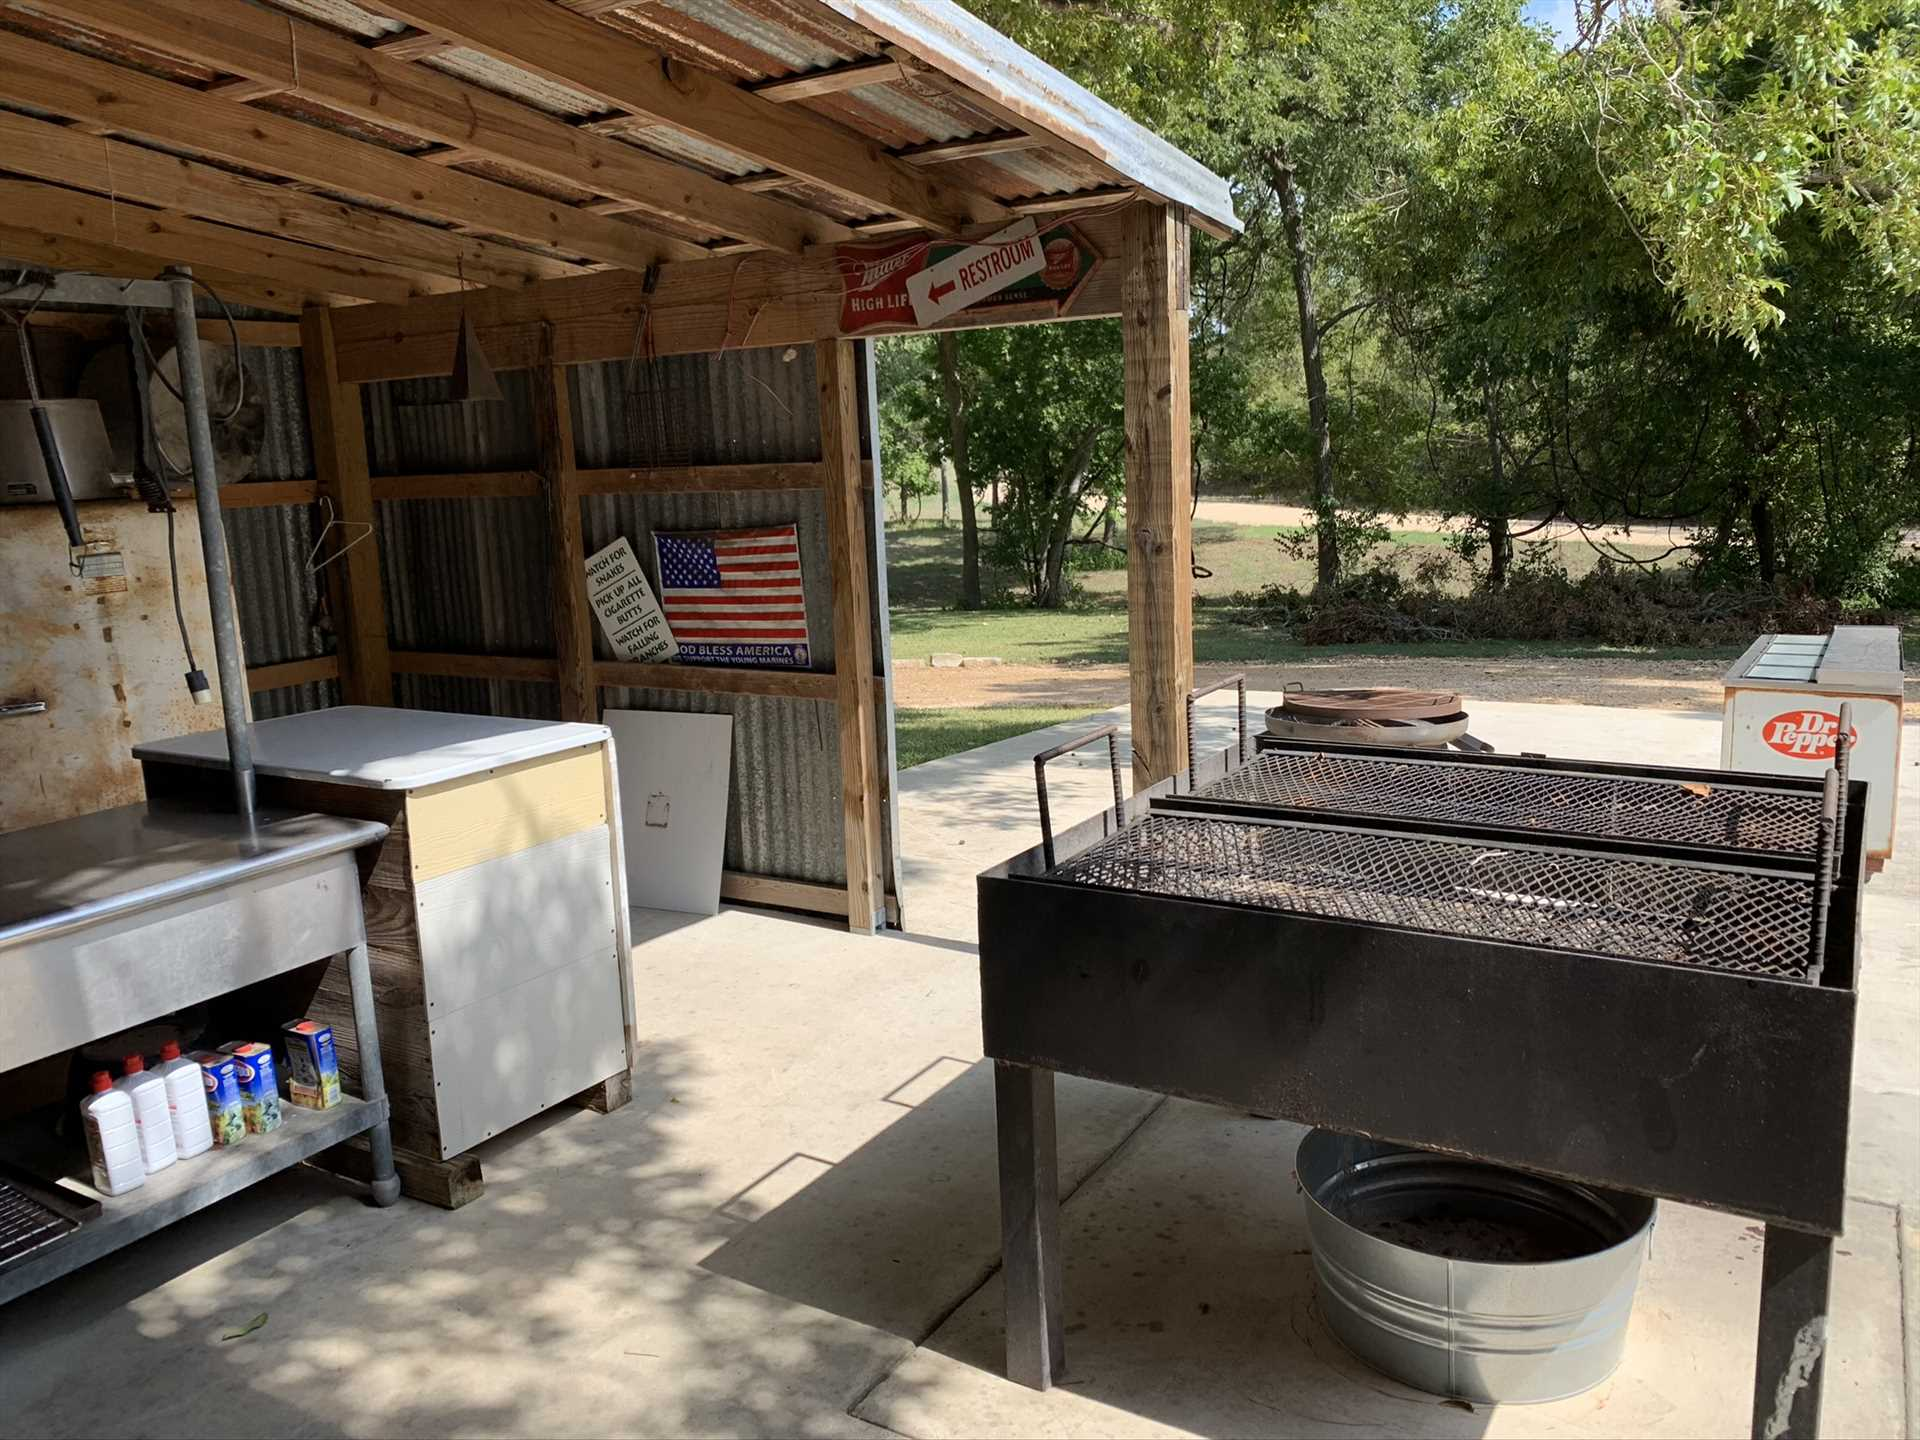 No matter how hungry your crew is, there's plenty of space to keep them happy and full on the BBQ pit.